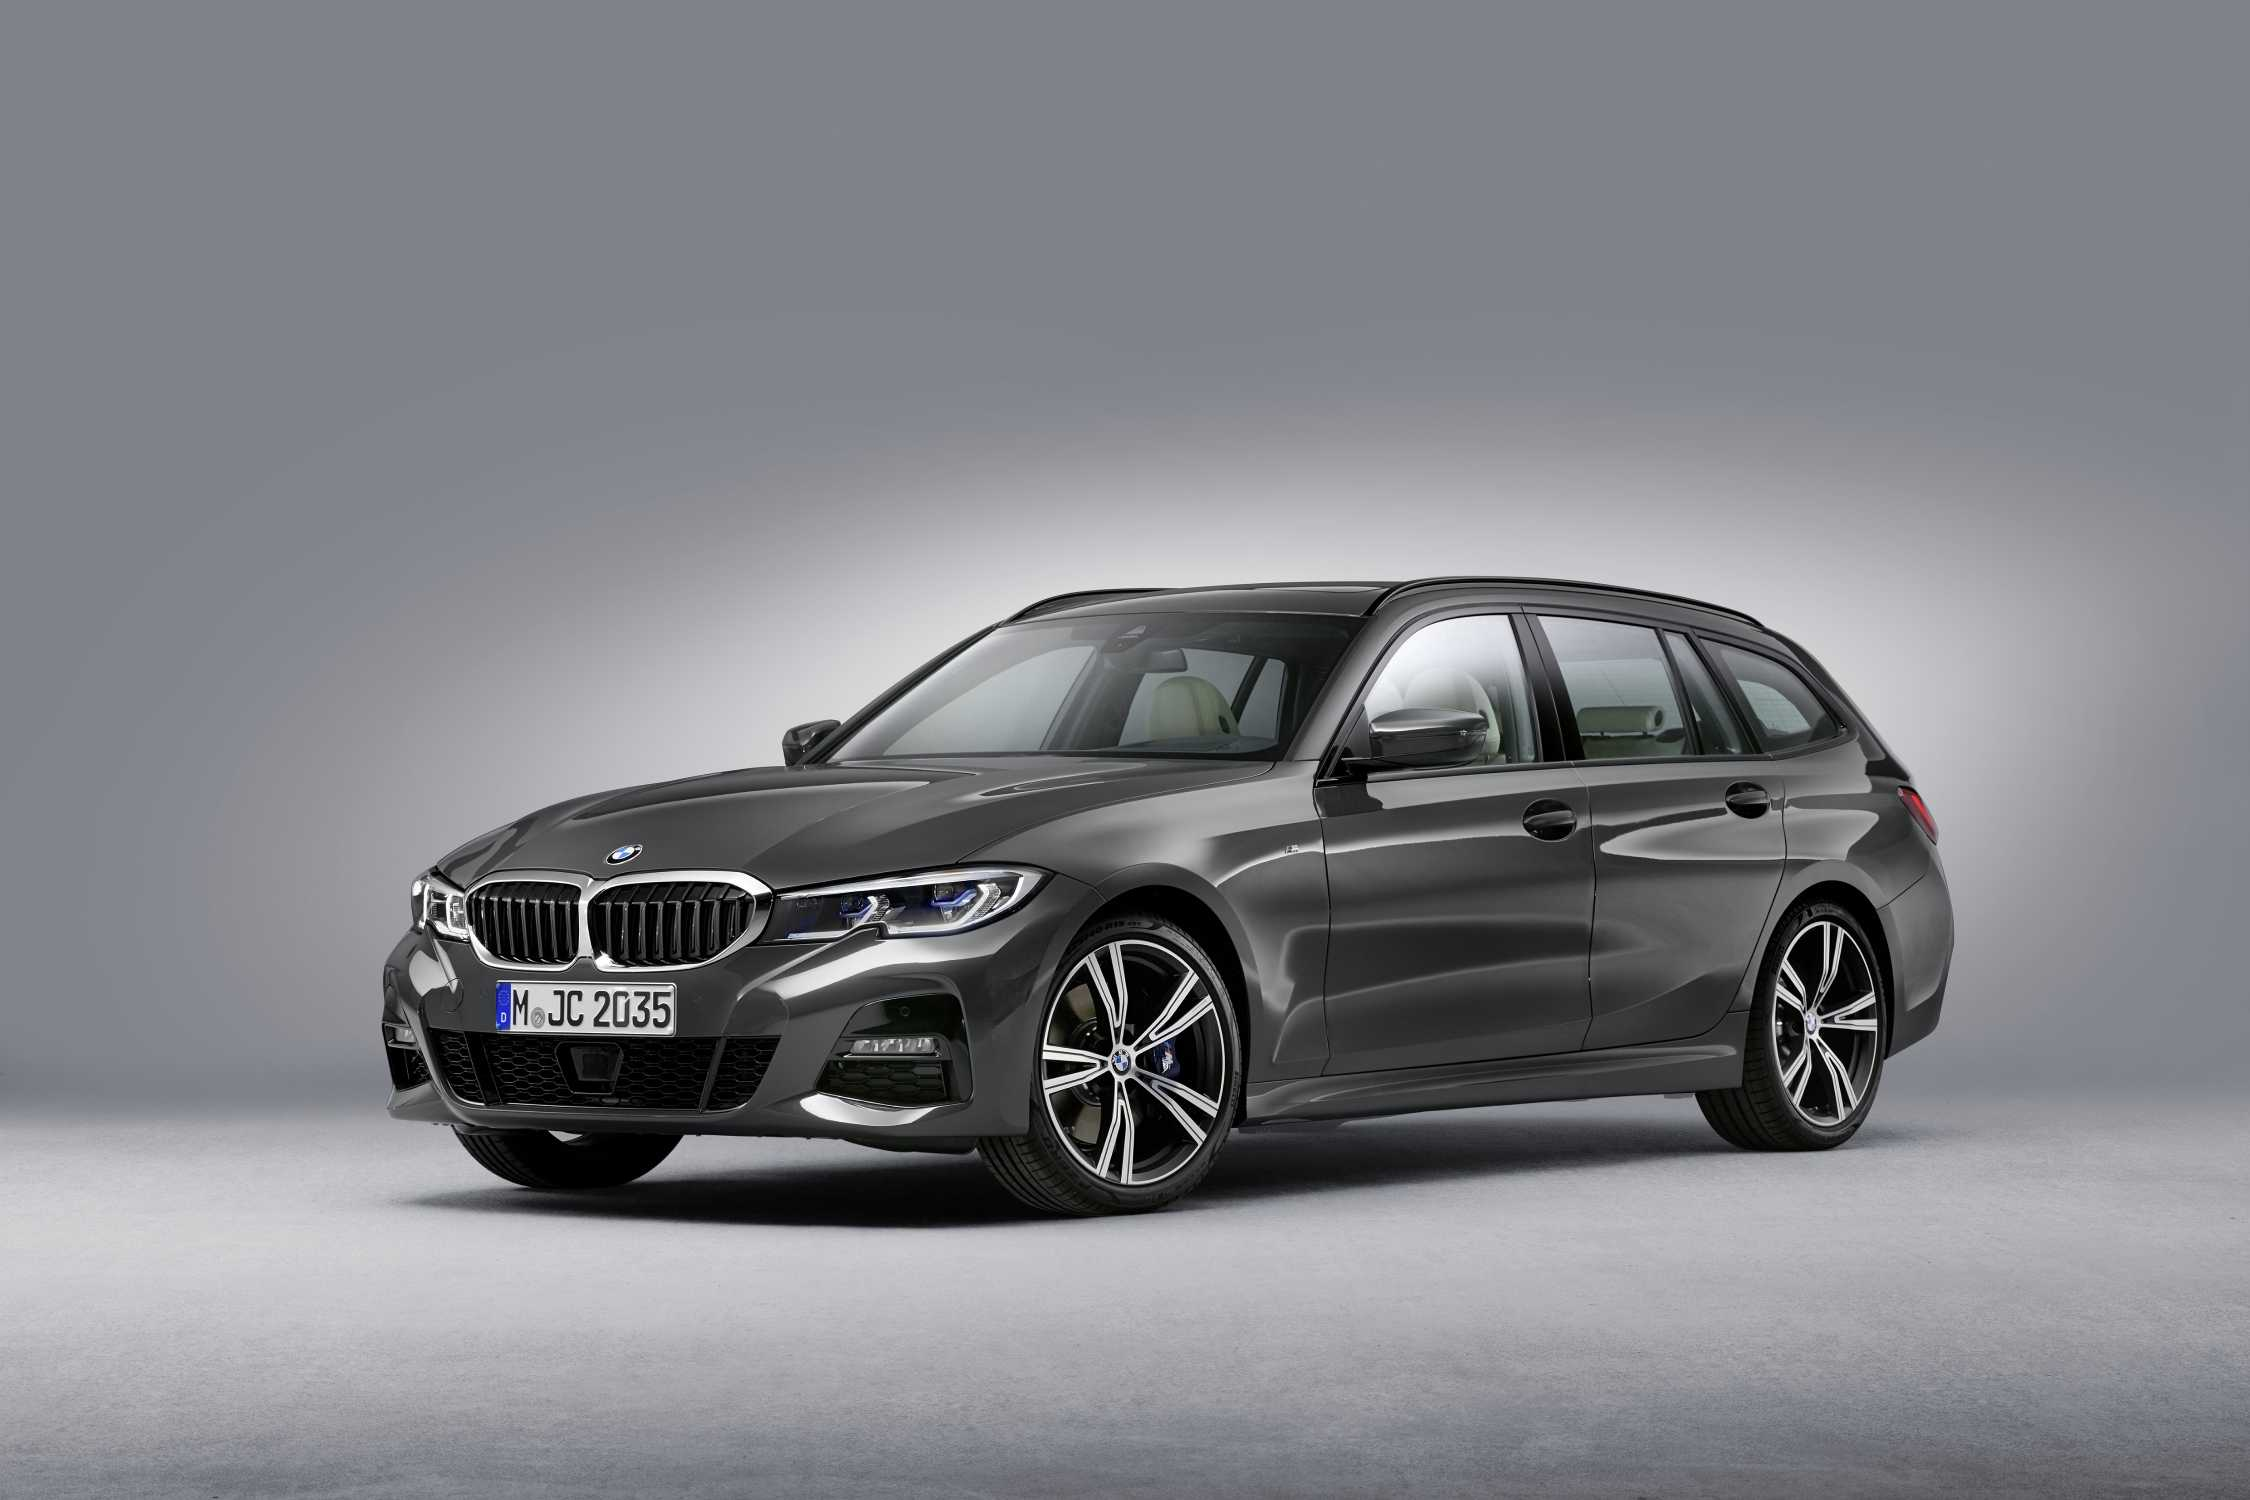 The New Bmw 3 Series Touring Model M Sport Bmw Individual Dravit